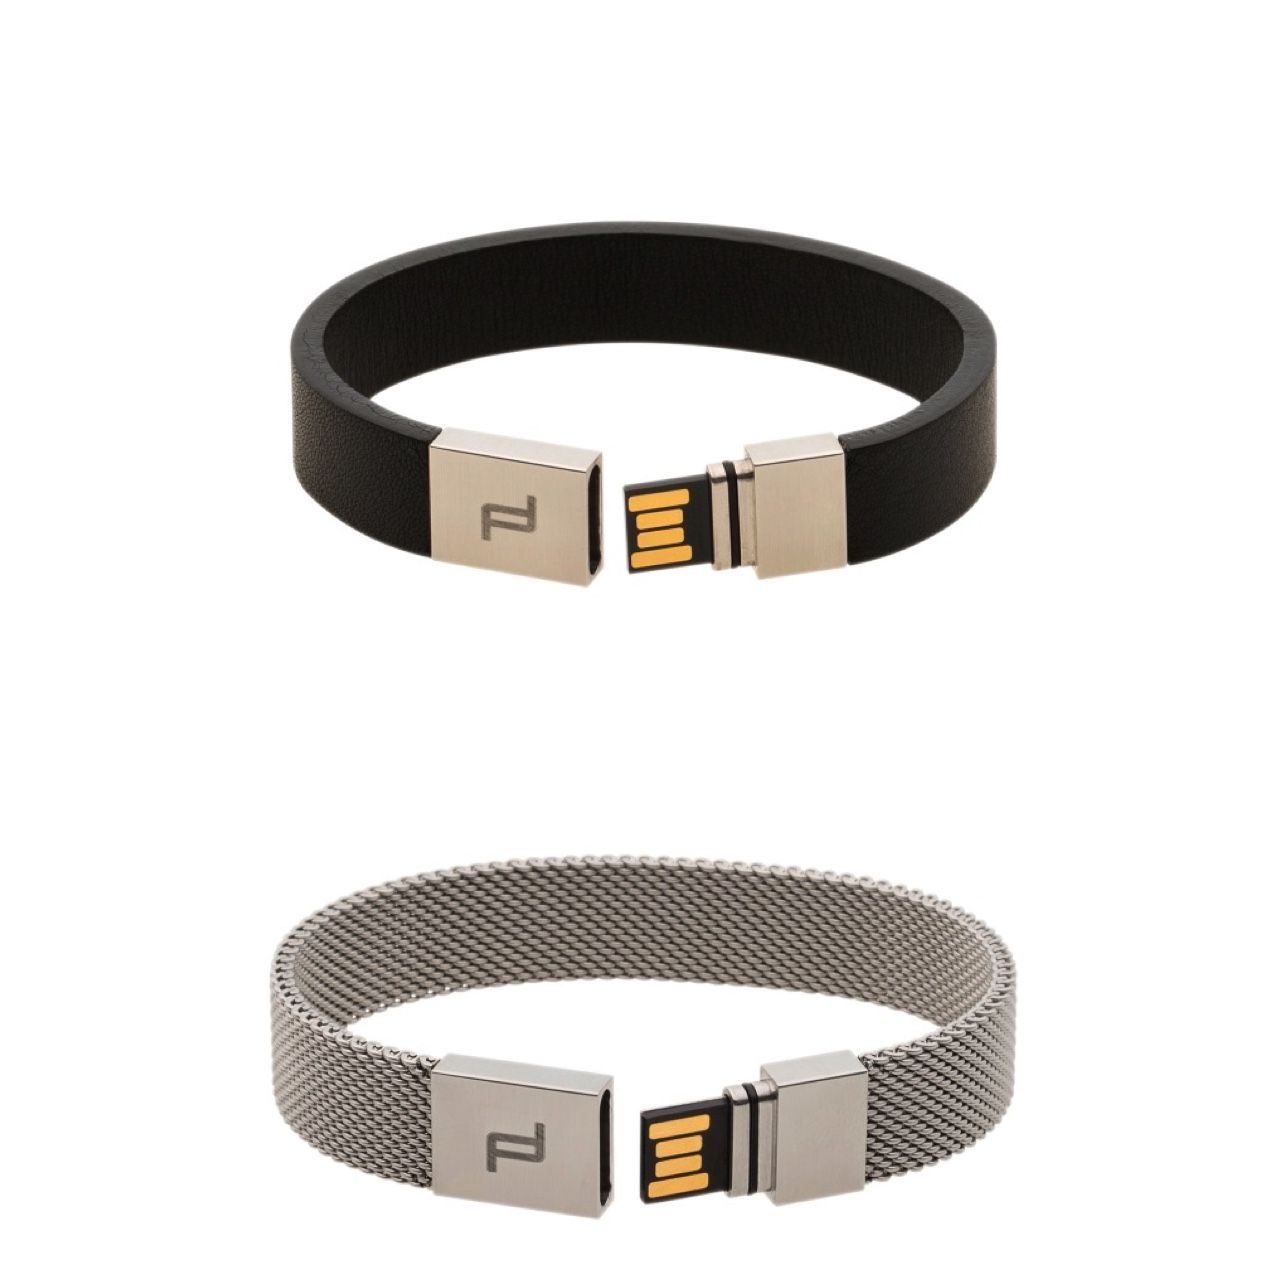 Porsche Design Usb Memory Bracelet If You Want To Customize A Good Looking And Packaging Visit Www Unifiedmanufacturing